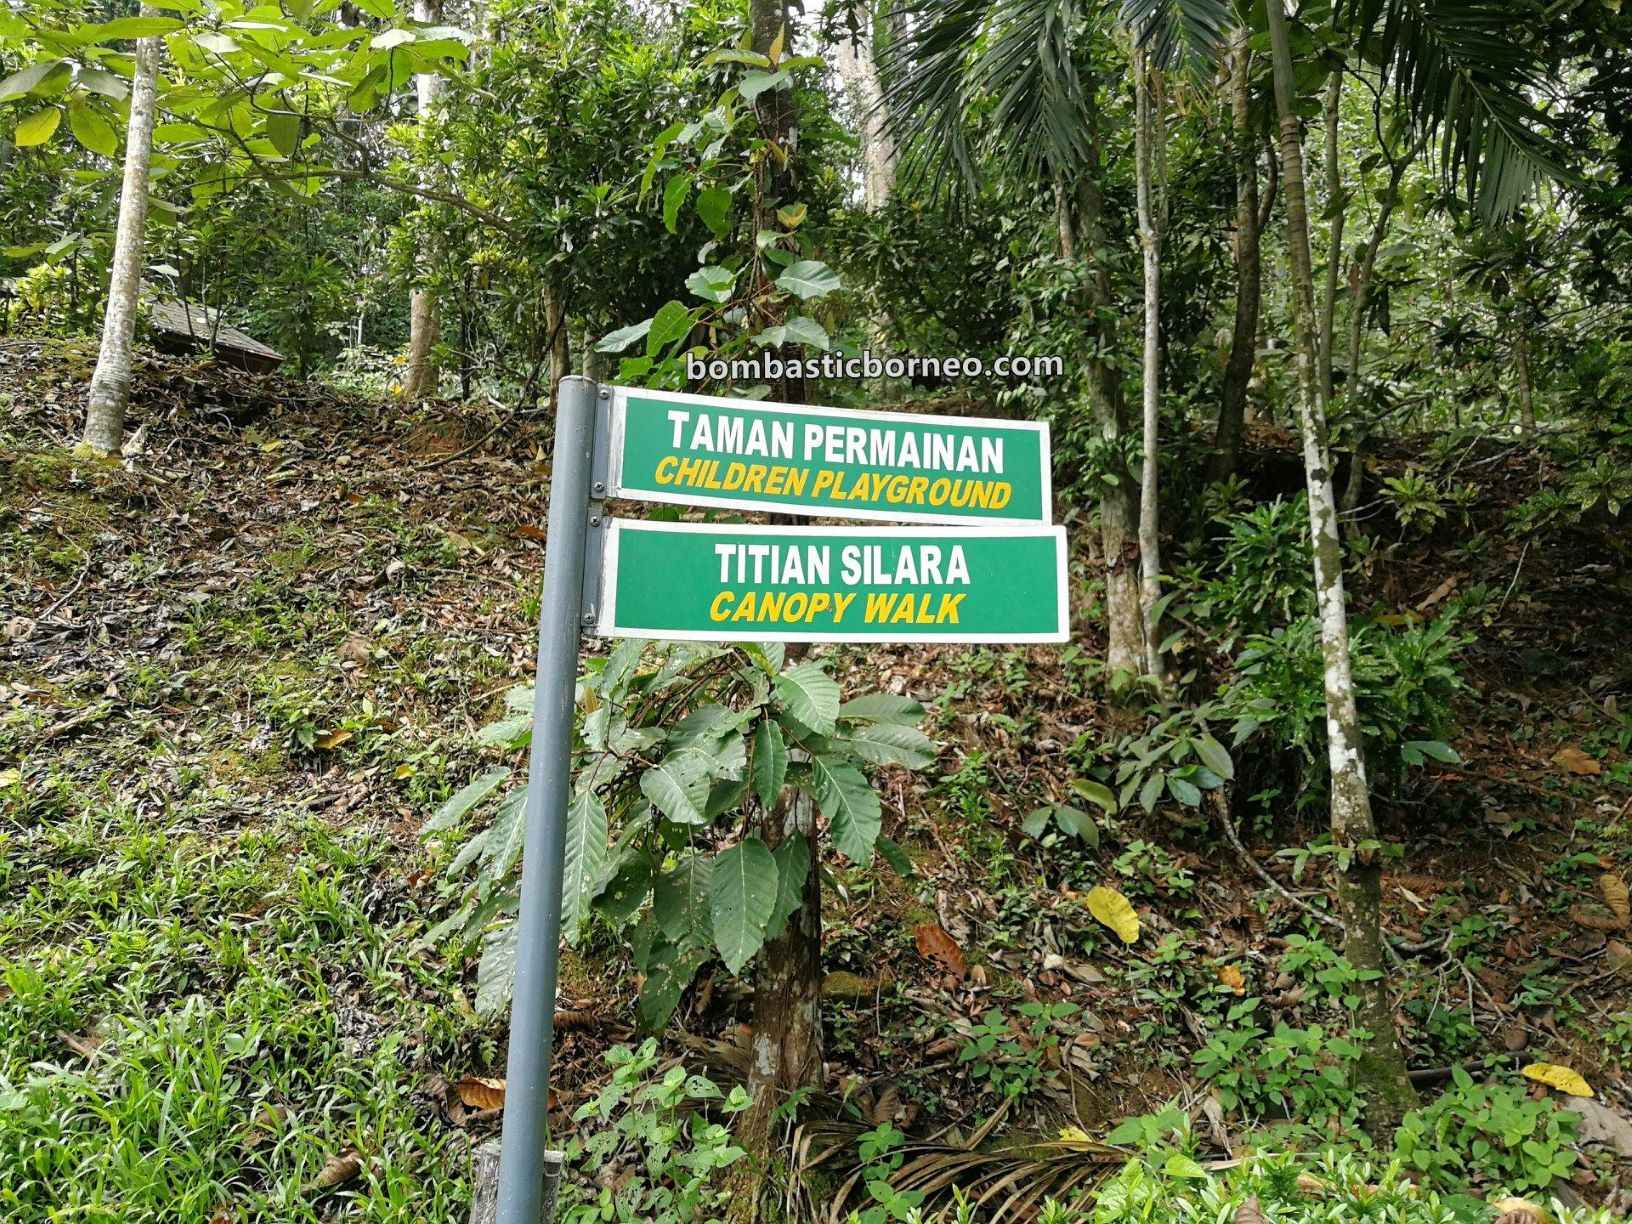 Gemok Hill Forest Reserve, adventure, nature, outdoor, jungle trekking, conservation, backpackers, Hutan simpan, Titian Silara, Malaysia, tourist attraction, travel guide, Trans Borneo, 婆罗洲斗湖, 沙巴森林保护区